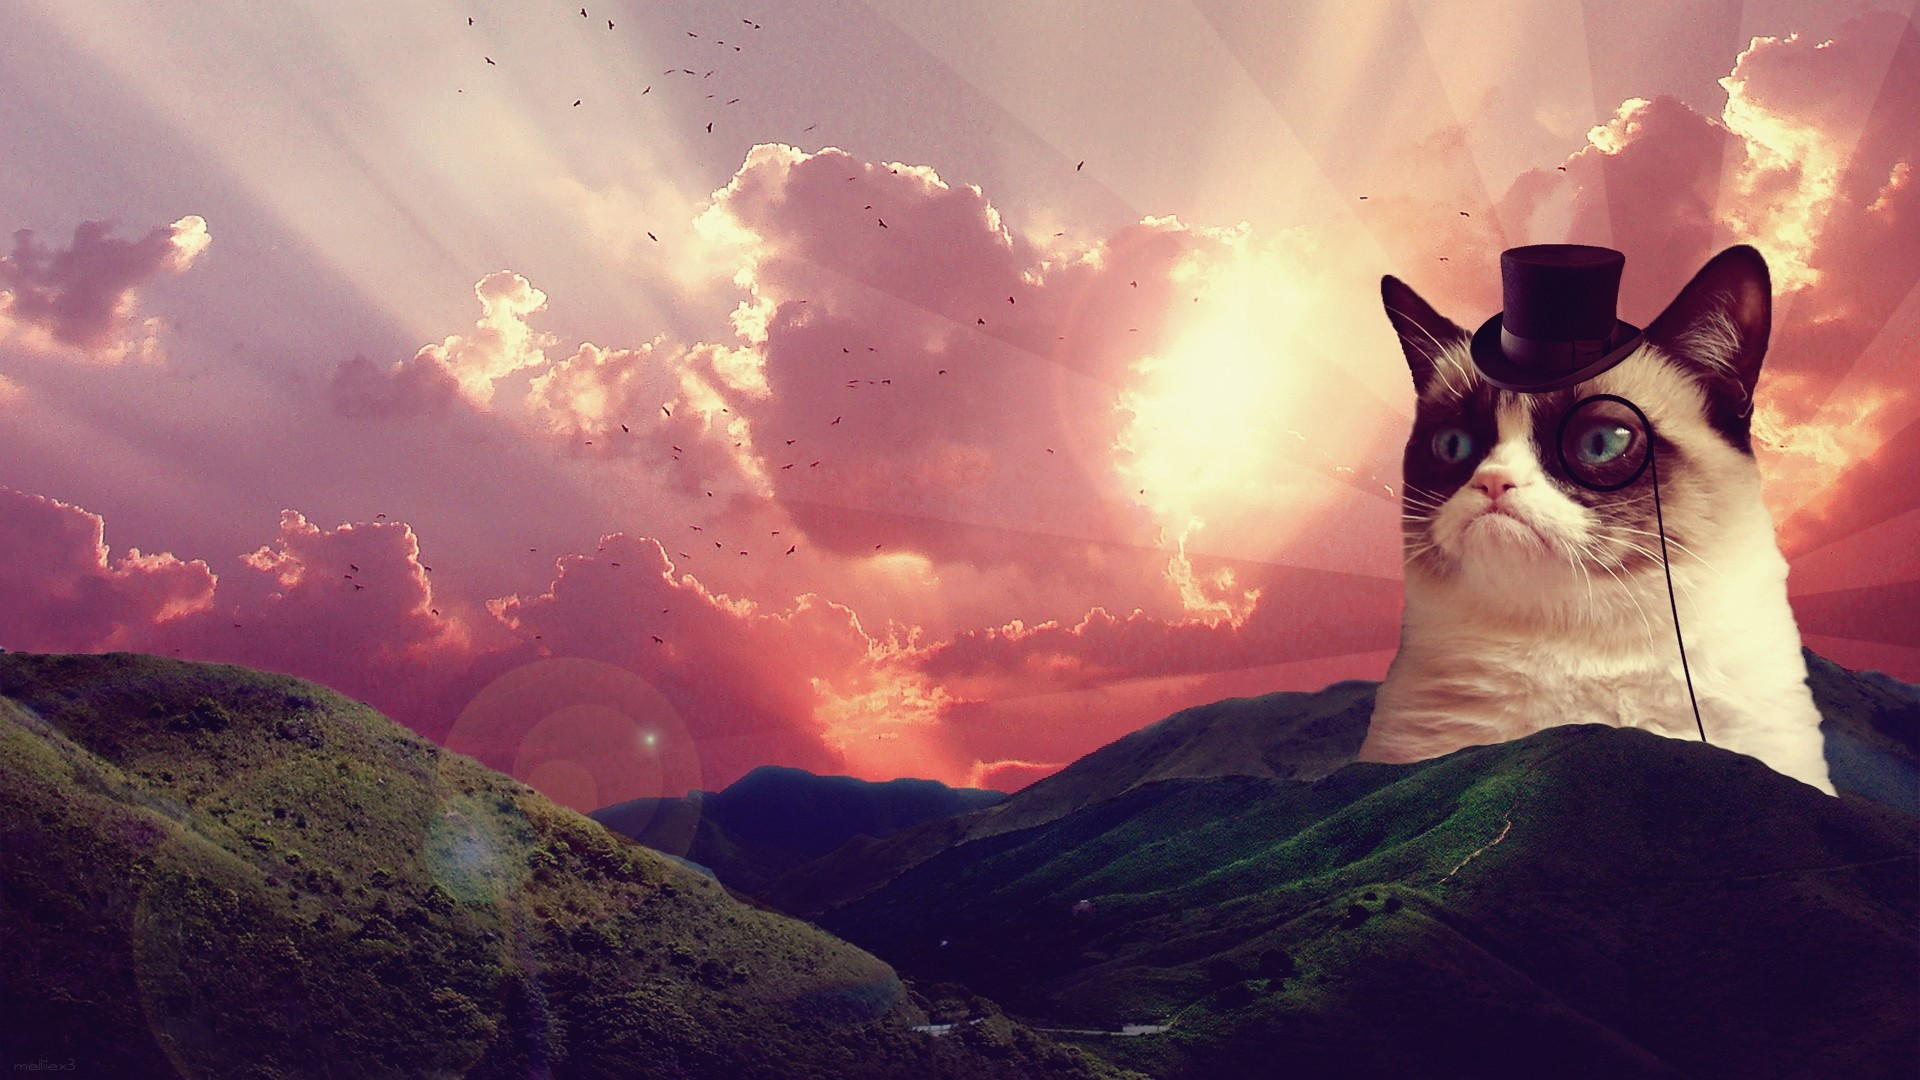 Res: 1920x1080, Space laser cat photo wallpapers.